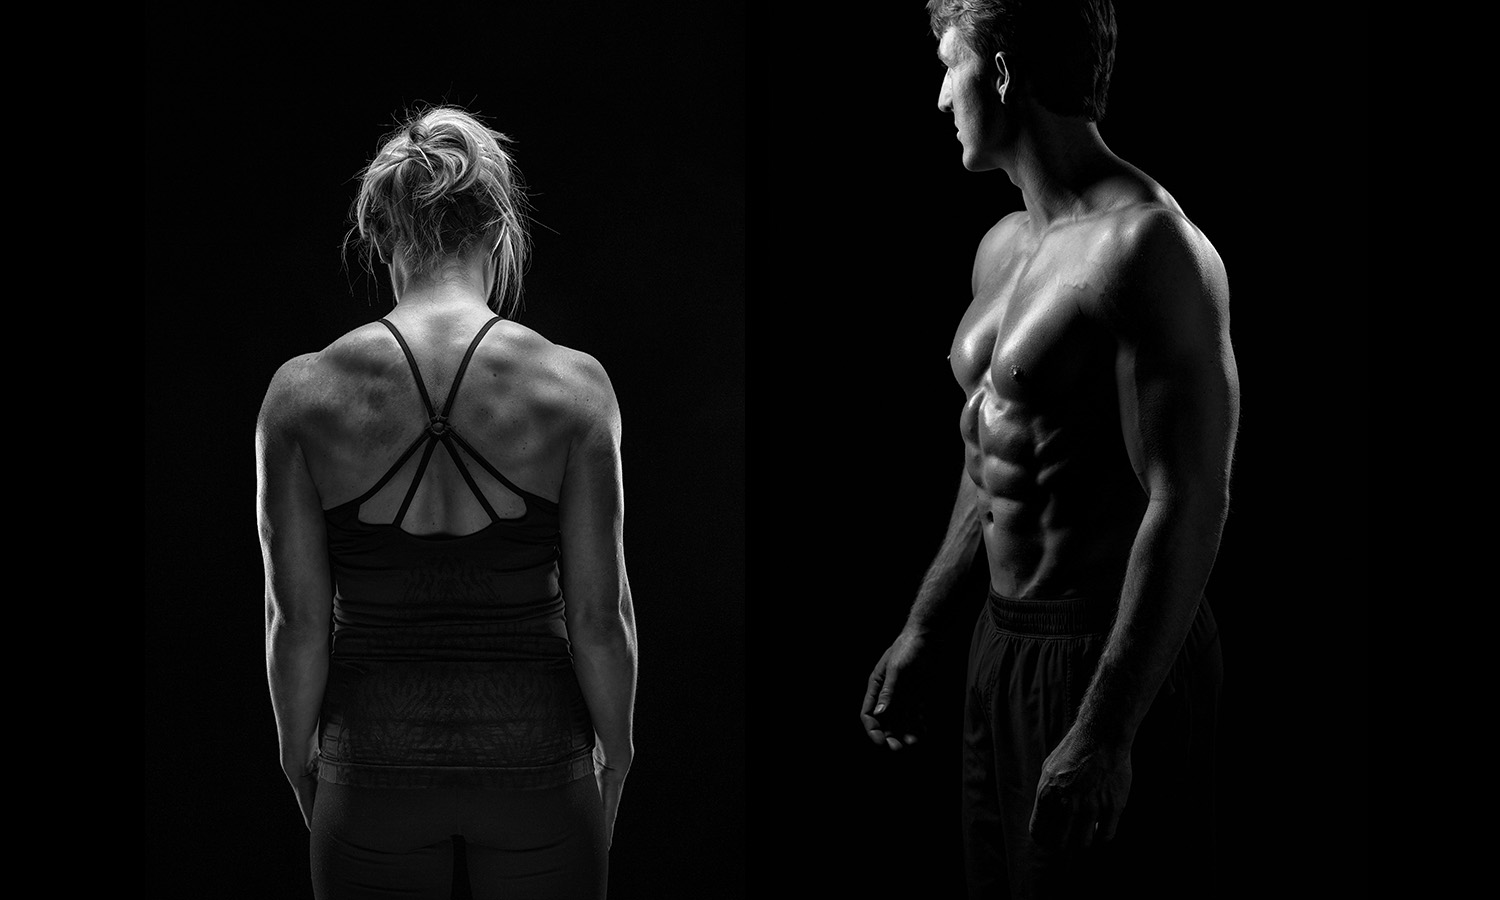 Black and White of muscle fitness